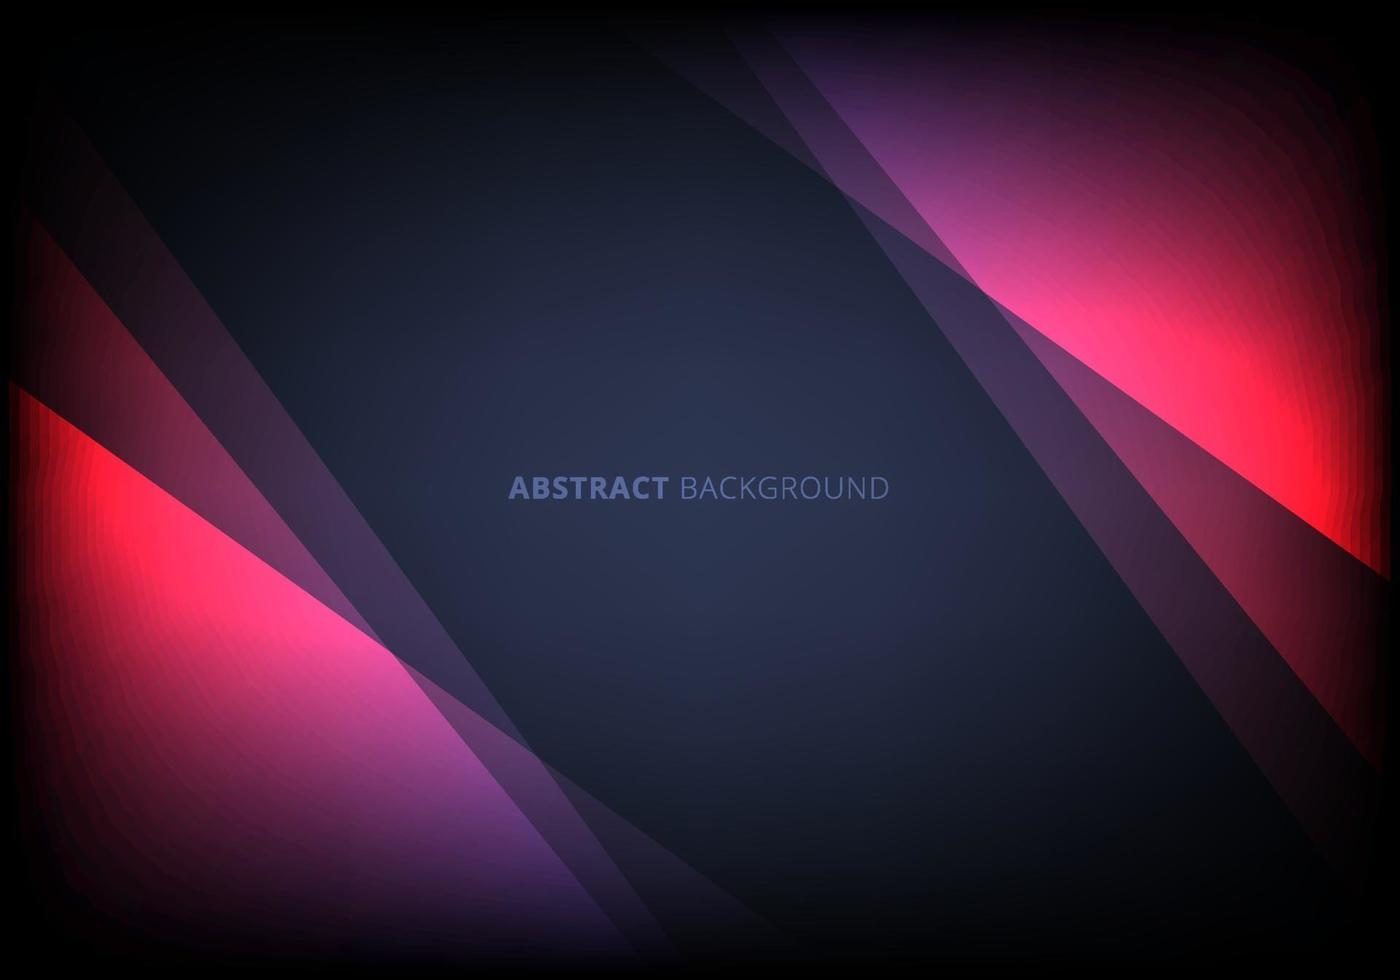 Abstract template pink triangle overlapping layered with lighting effect on dark blue background vector